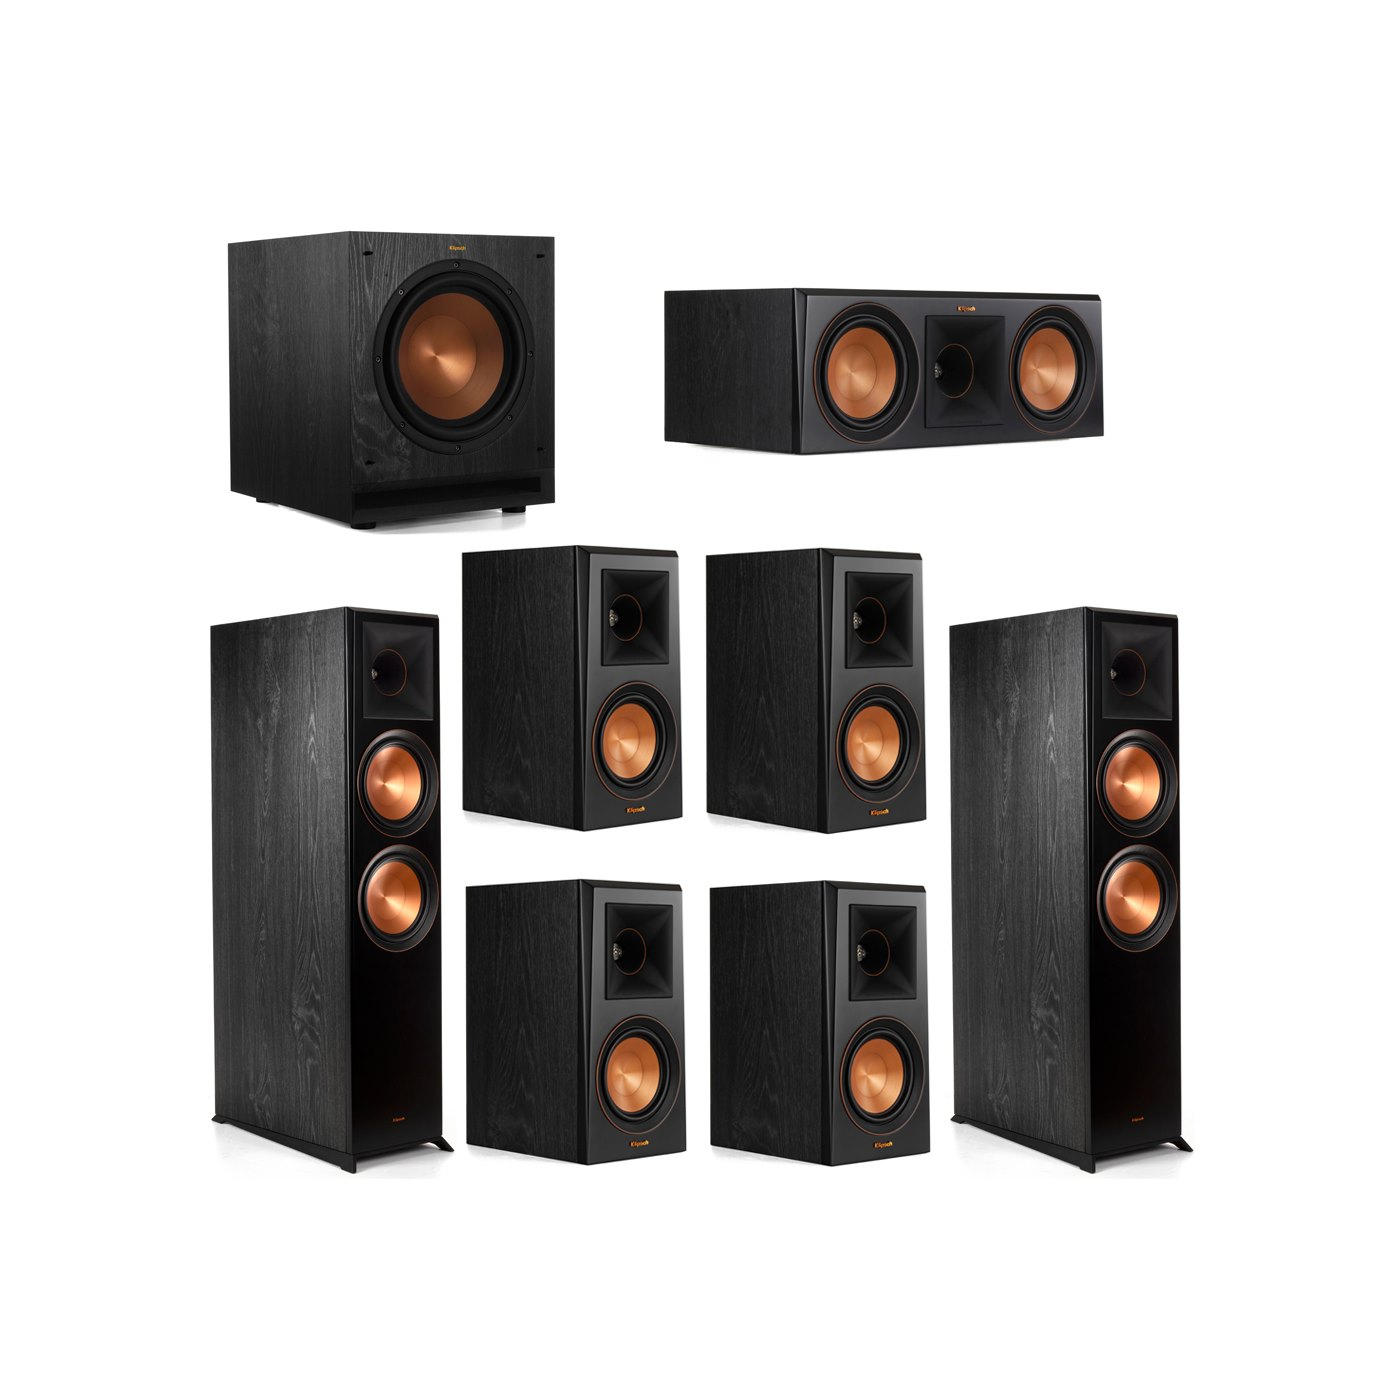 Klipsch 7.1 System with 2 RP-8000F Floorstanding Speakers, 1 Klipsch RP-600C Center Speaker, 4 Klipsch RP-500M Surround Speakers, 1 Klipsch SPL-100 Subwoofer